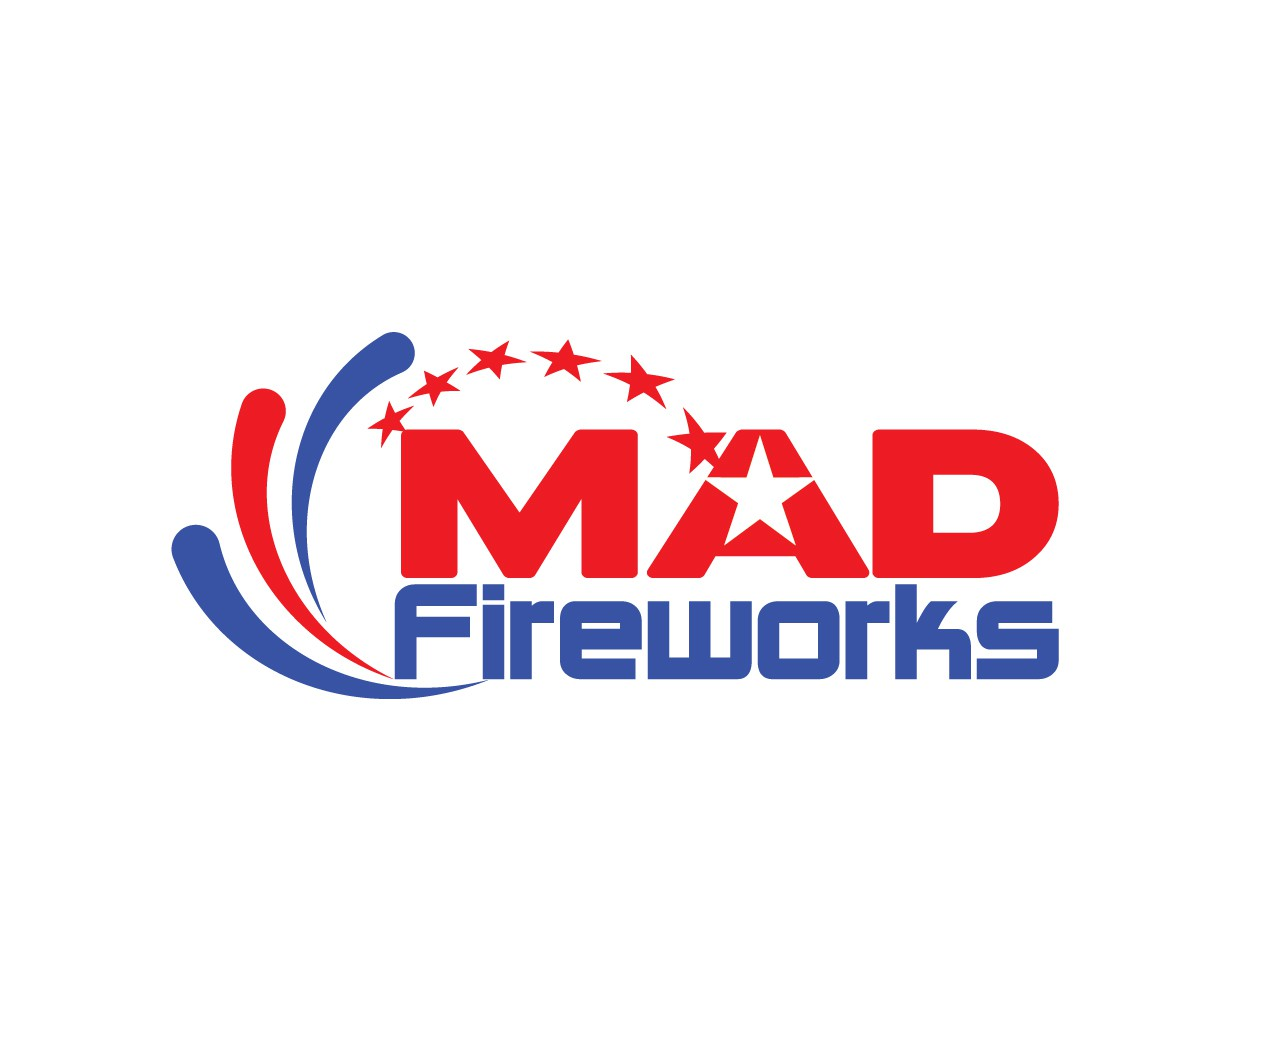 Help MAD Fireworks with a new logo